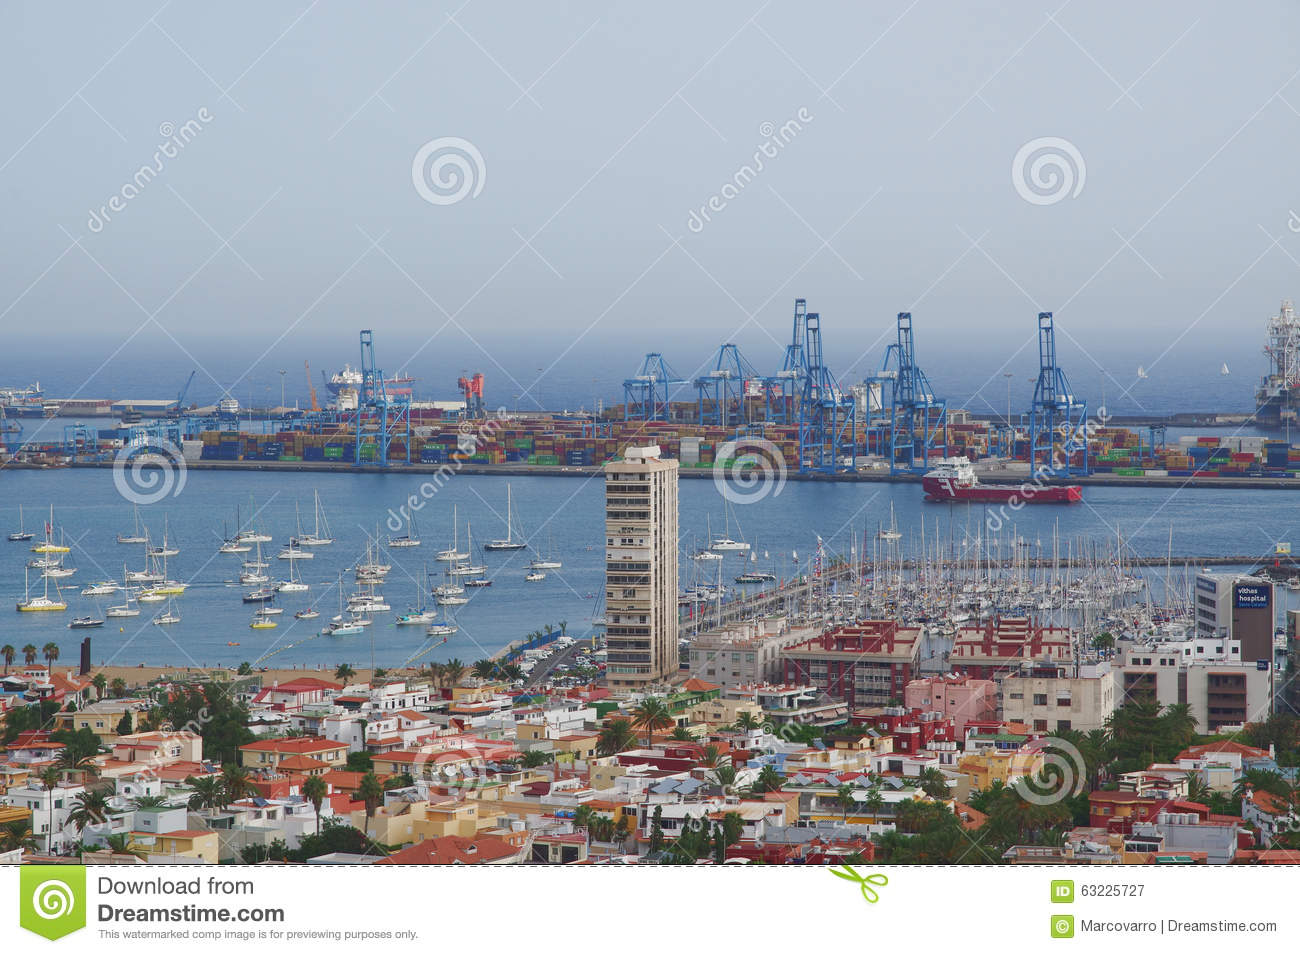 Port of las palmas de gran canaria spain editorial image 38612756 - Port of las palmas gran canaria ...